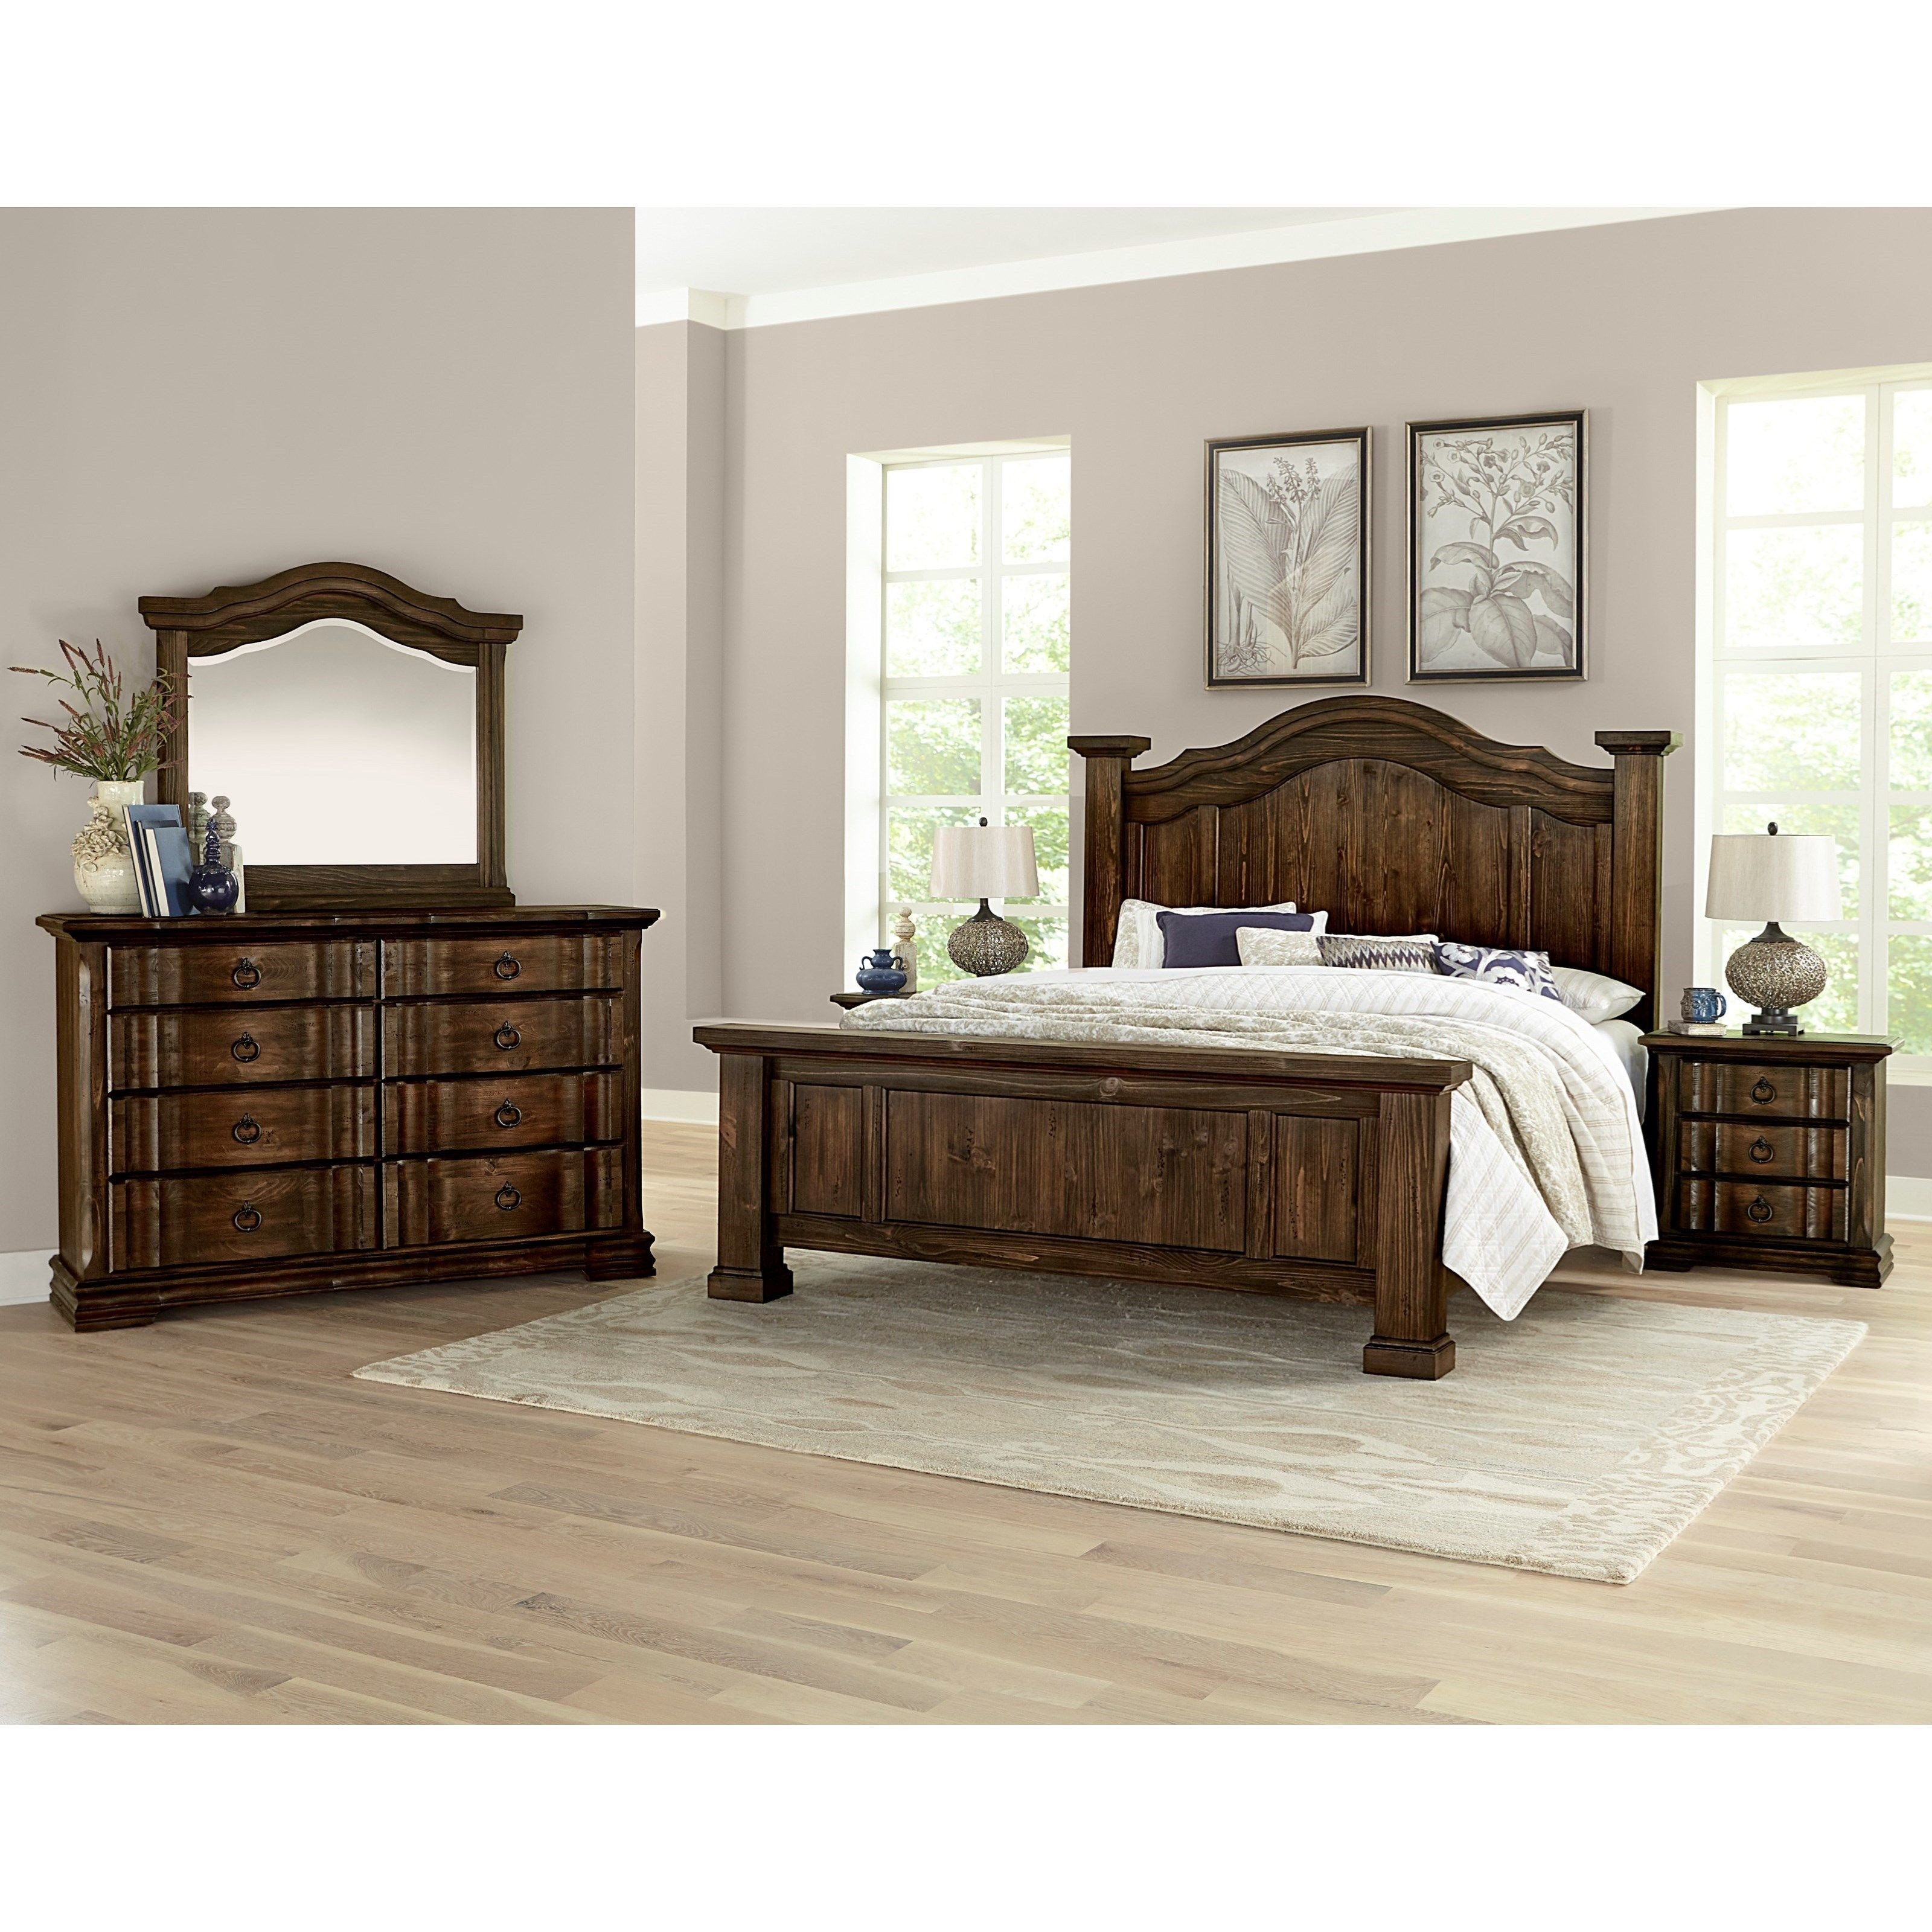 Vaughan Bassett Bedroom Set Luxury Rustic Hills King Bedroom Group by Vaughan Bassett